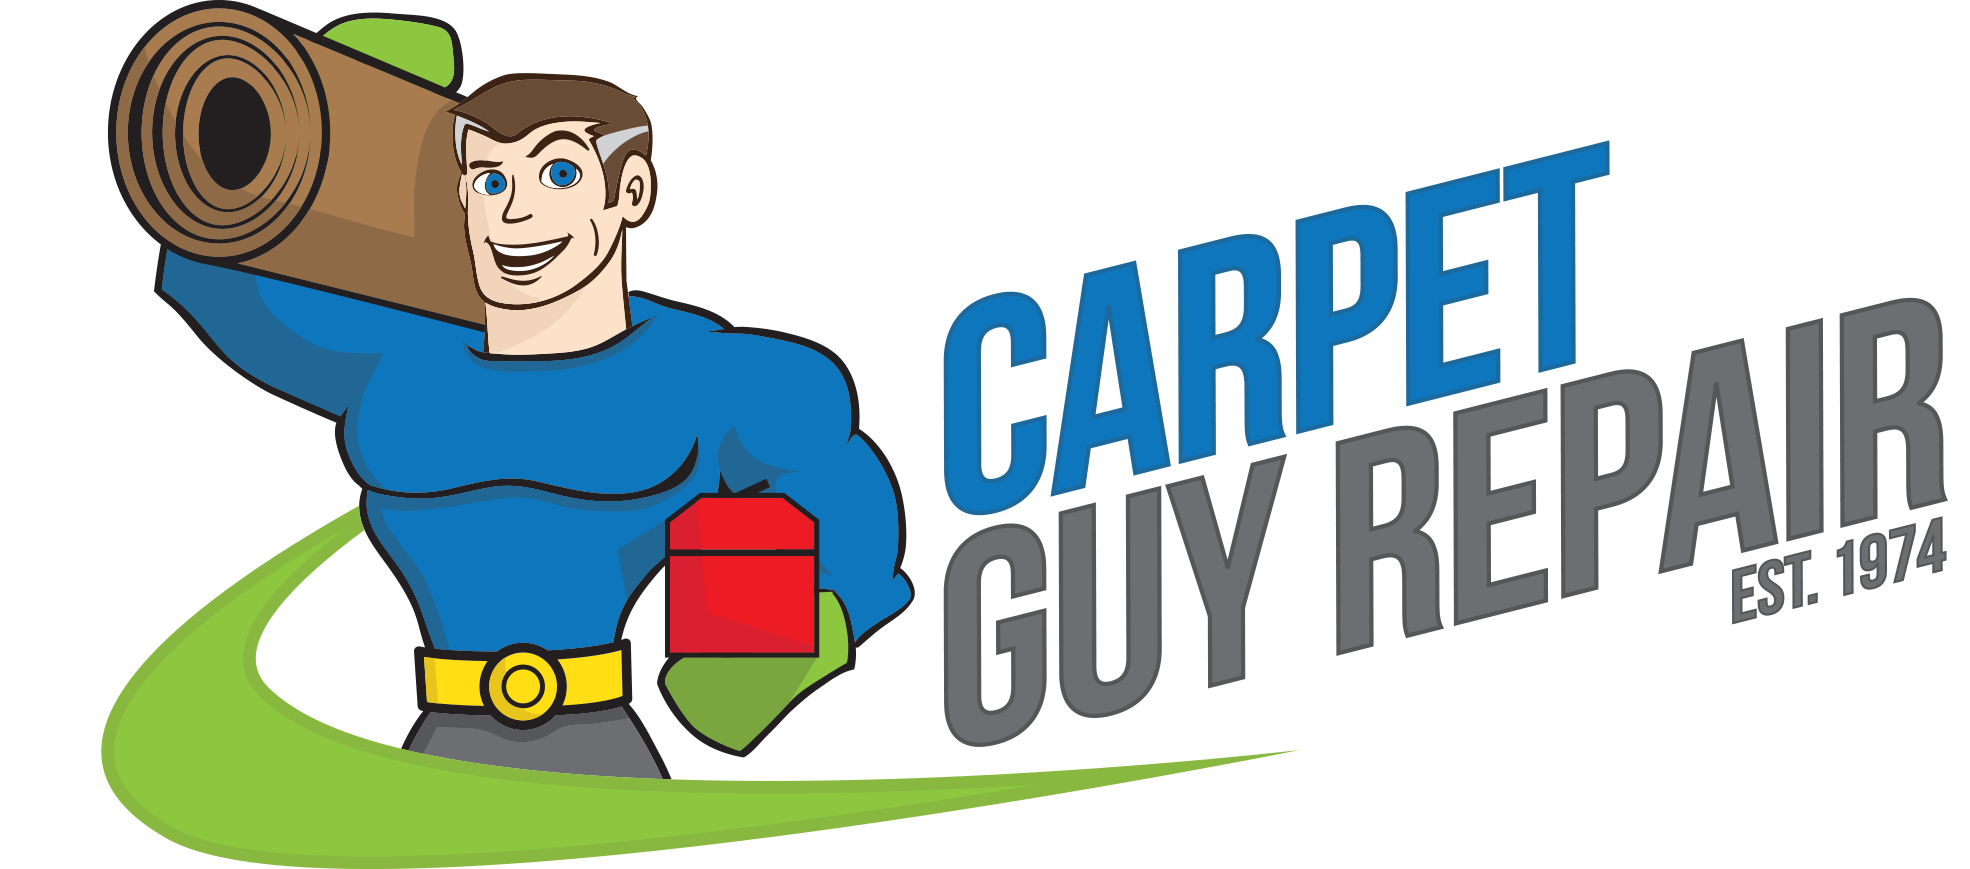 Expert service in carpet repair, maintenance and installation